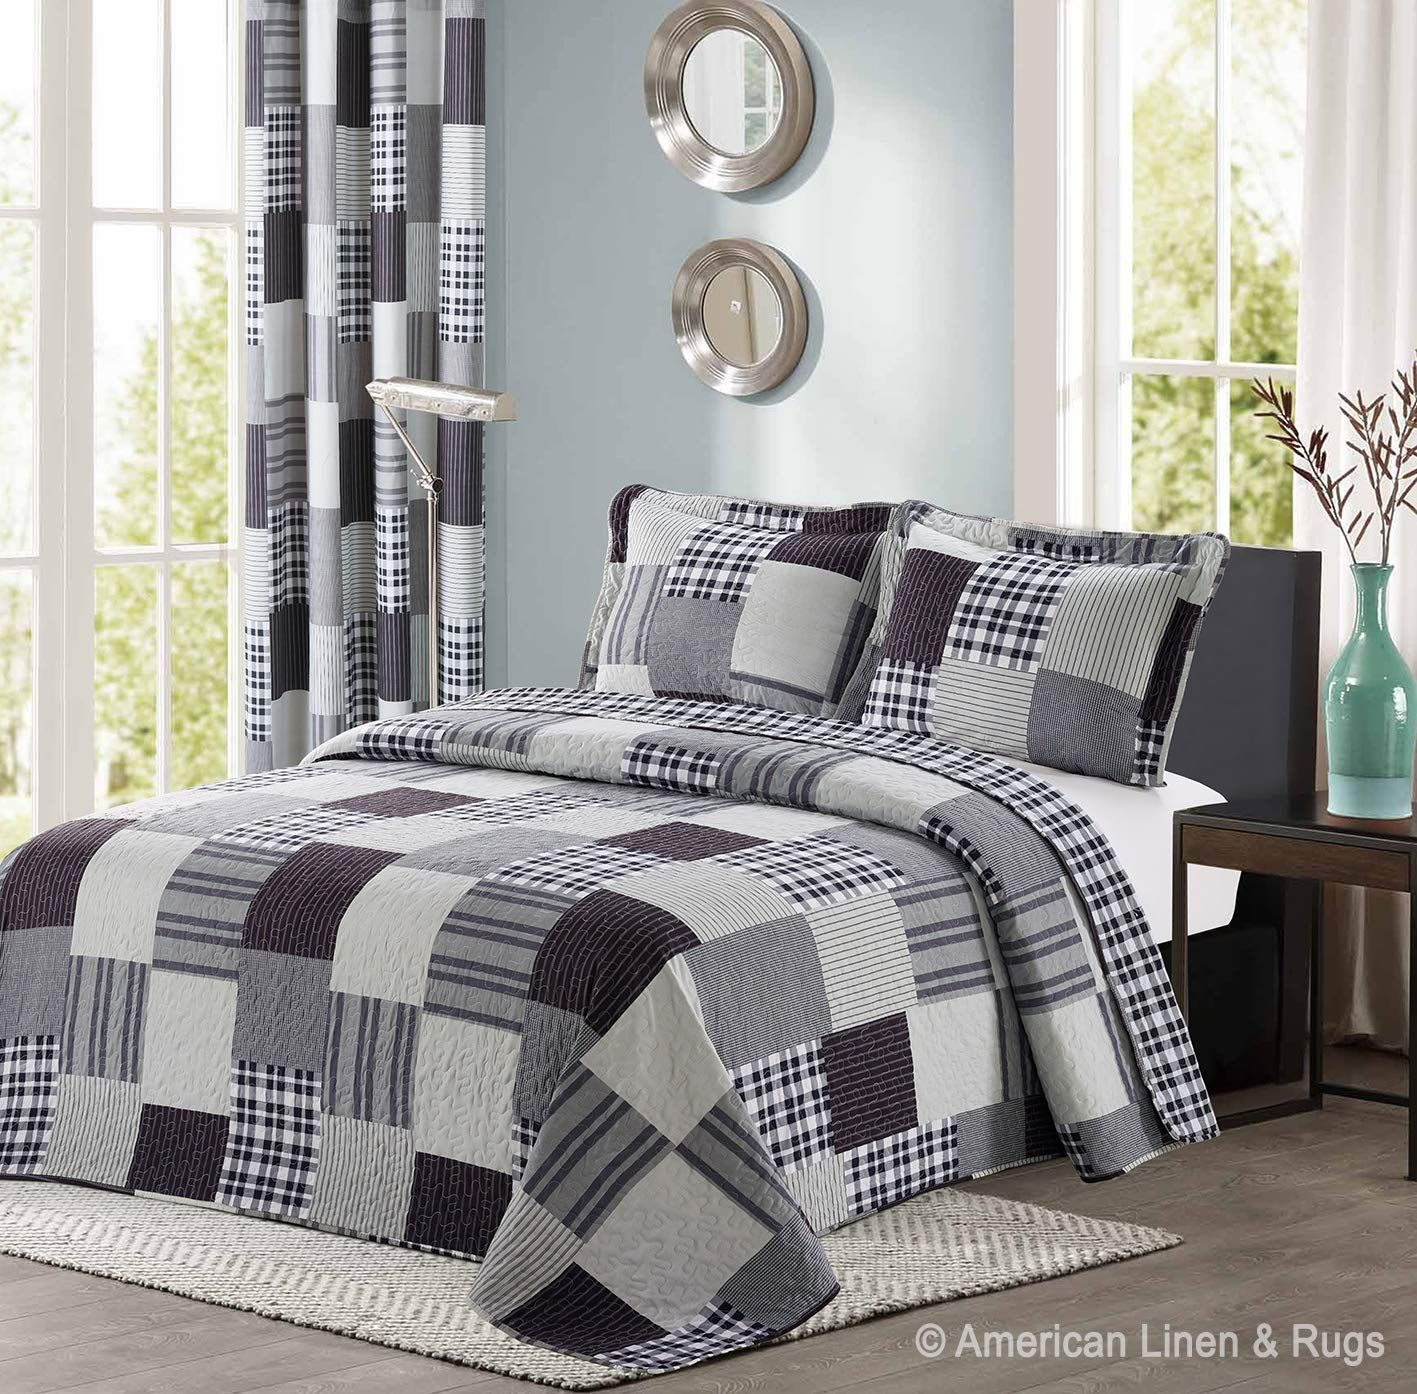 All American Collection Black And Grey Modern Plaid 3 Piece Queen